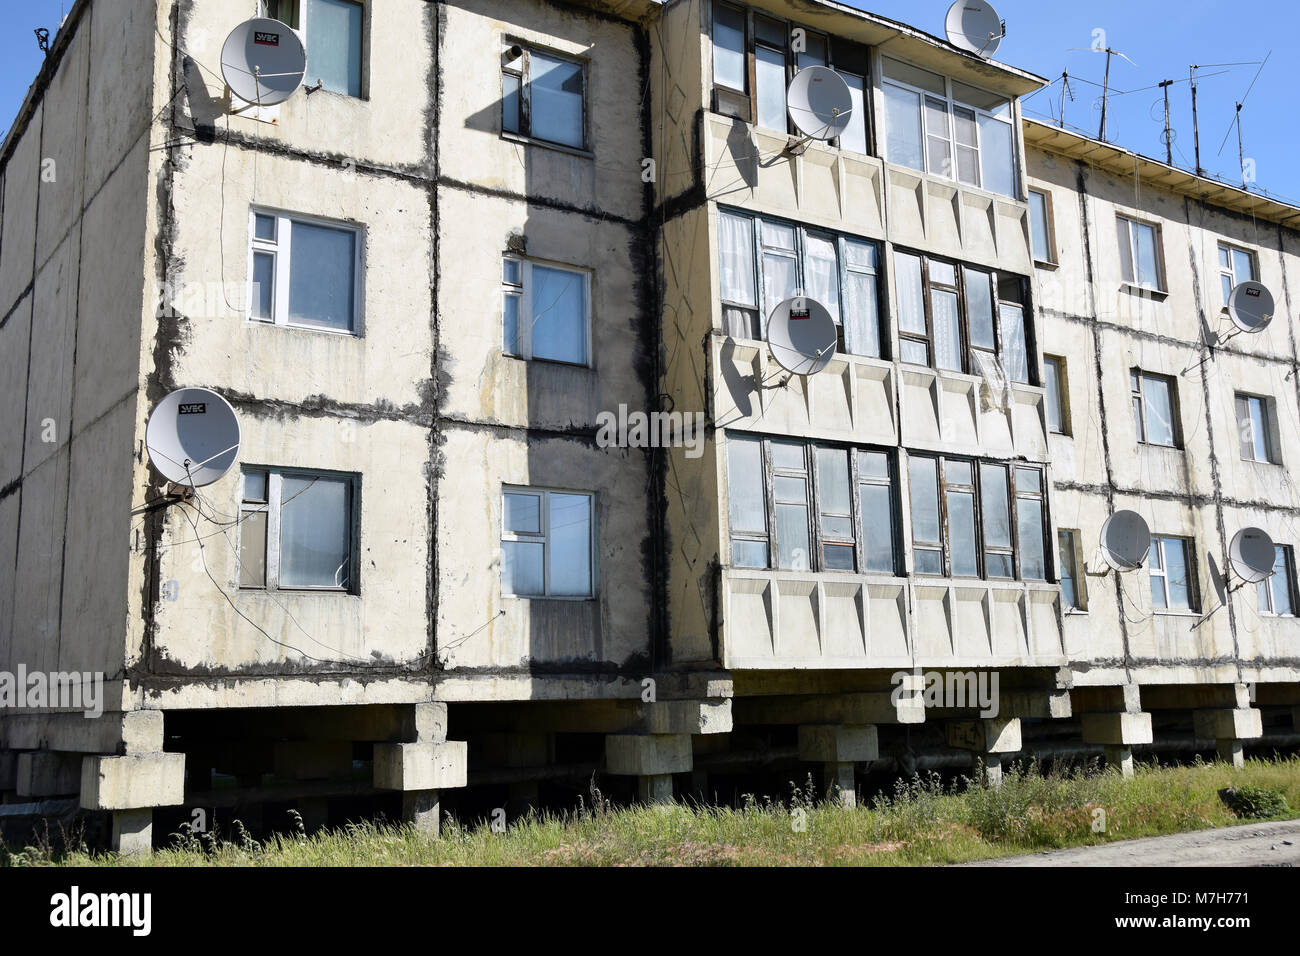 A concrete building in the town of Ust Nera, northern Kolyma. The building is built on piles because of the permafrost. - Stock Image